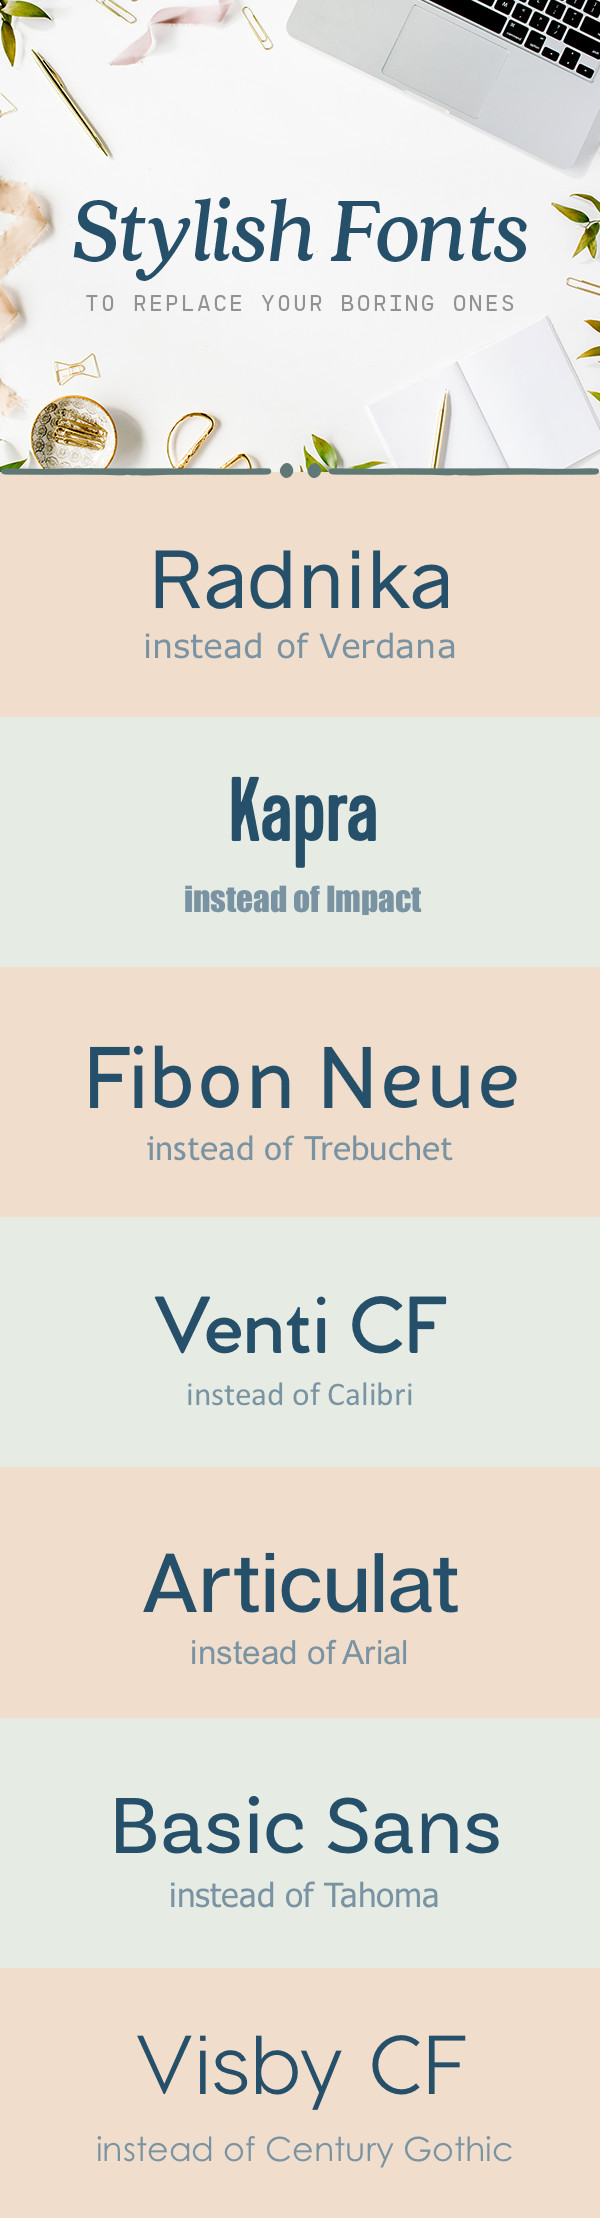 Stylish fonts to replace all your boring ones creative market blog pin it for later fandeluxe Image collections